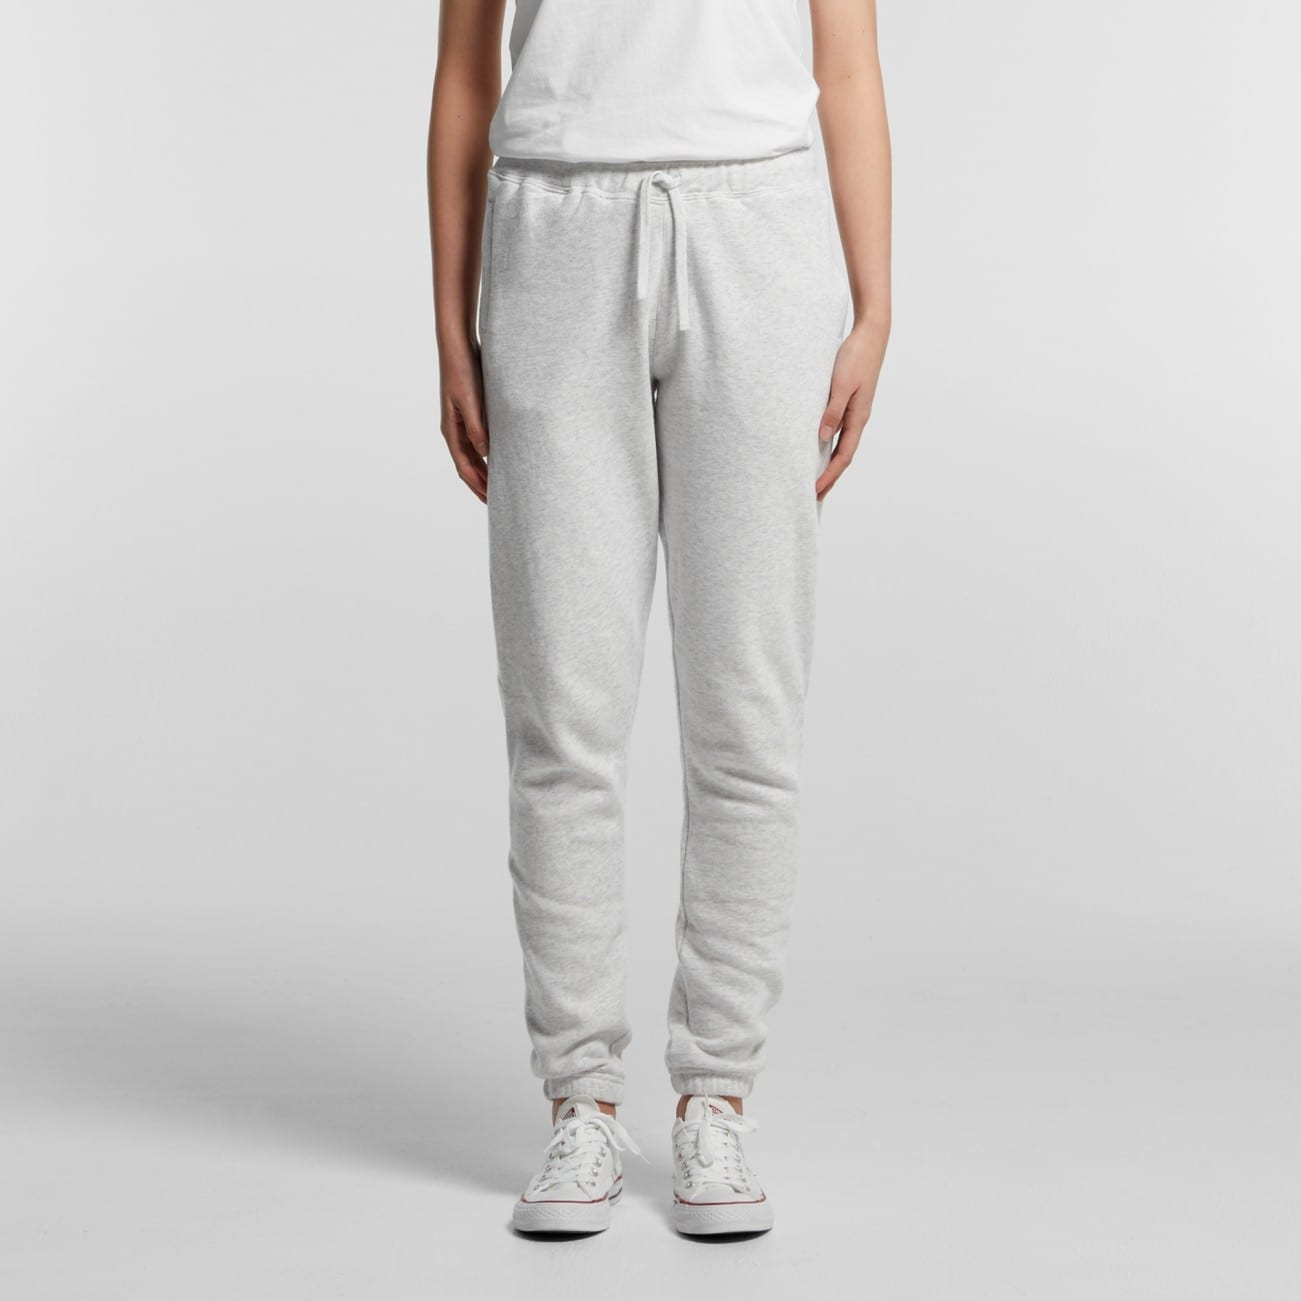 AS 4067 Surplus Track Pants